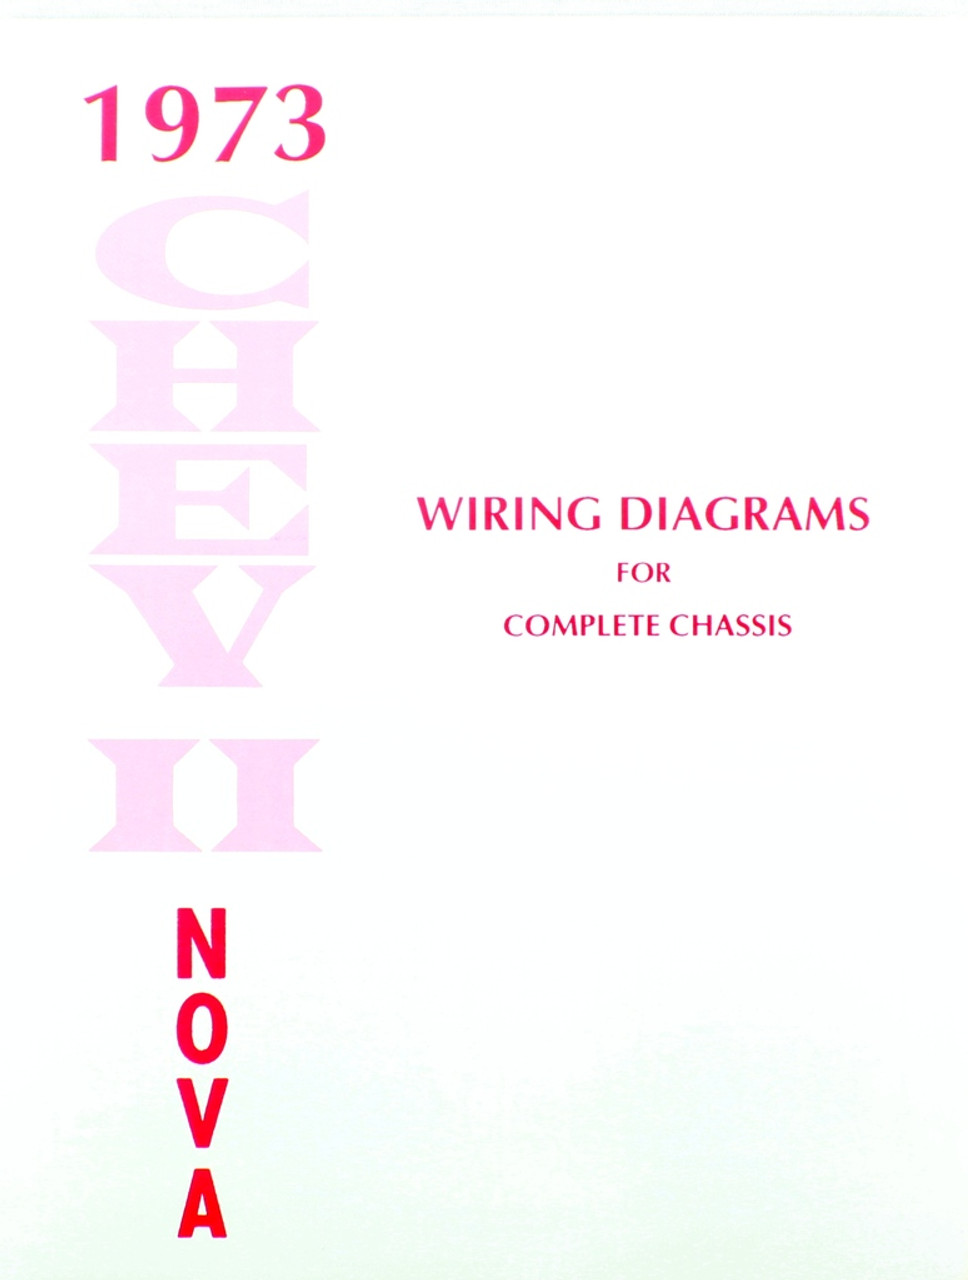 73 chevy nova electrical wiring diagram manual 1973 73 camaro wiring diagram 1973 chevy nova wiring diagram #11